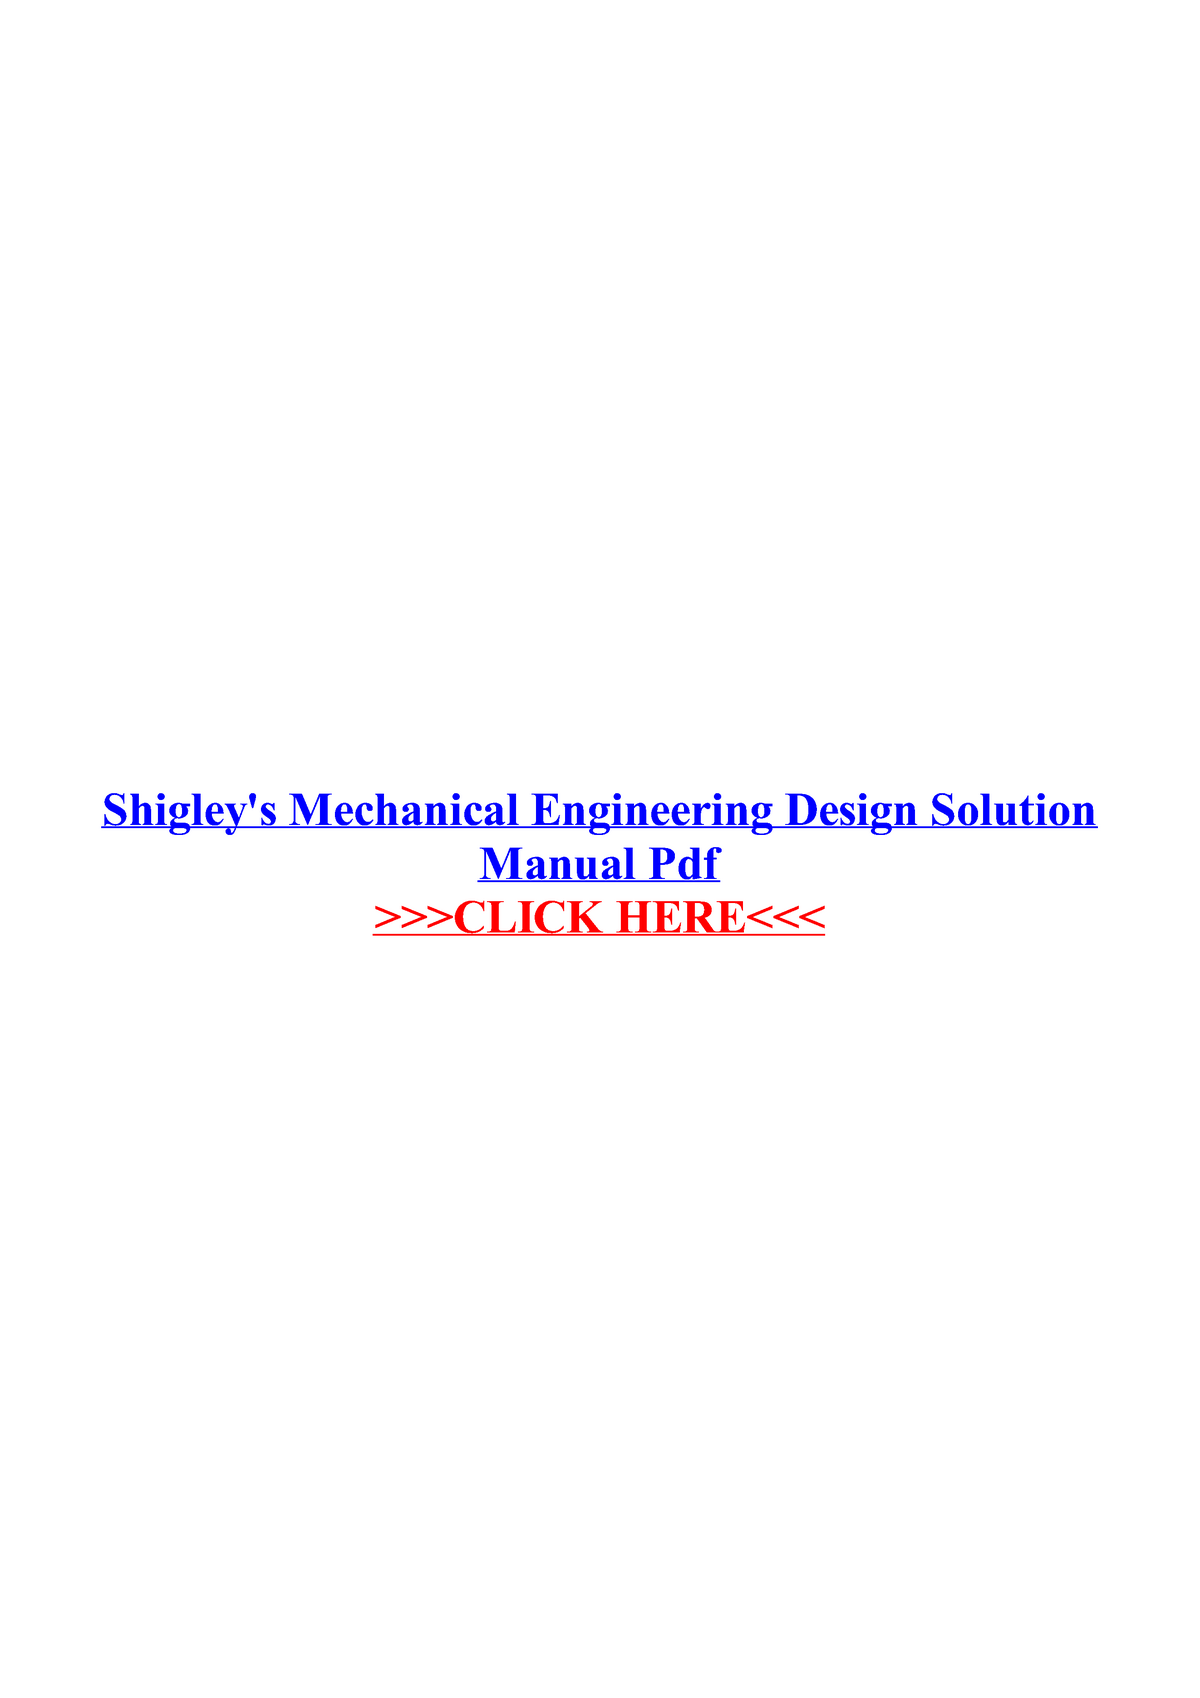 Shigleys Mechanical Engineering Design Solution Manual Pdf Studocu